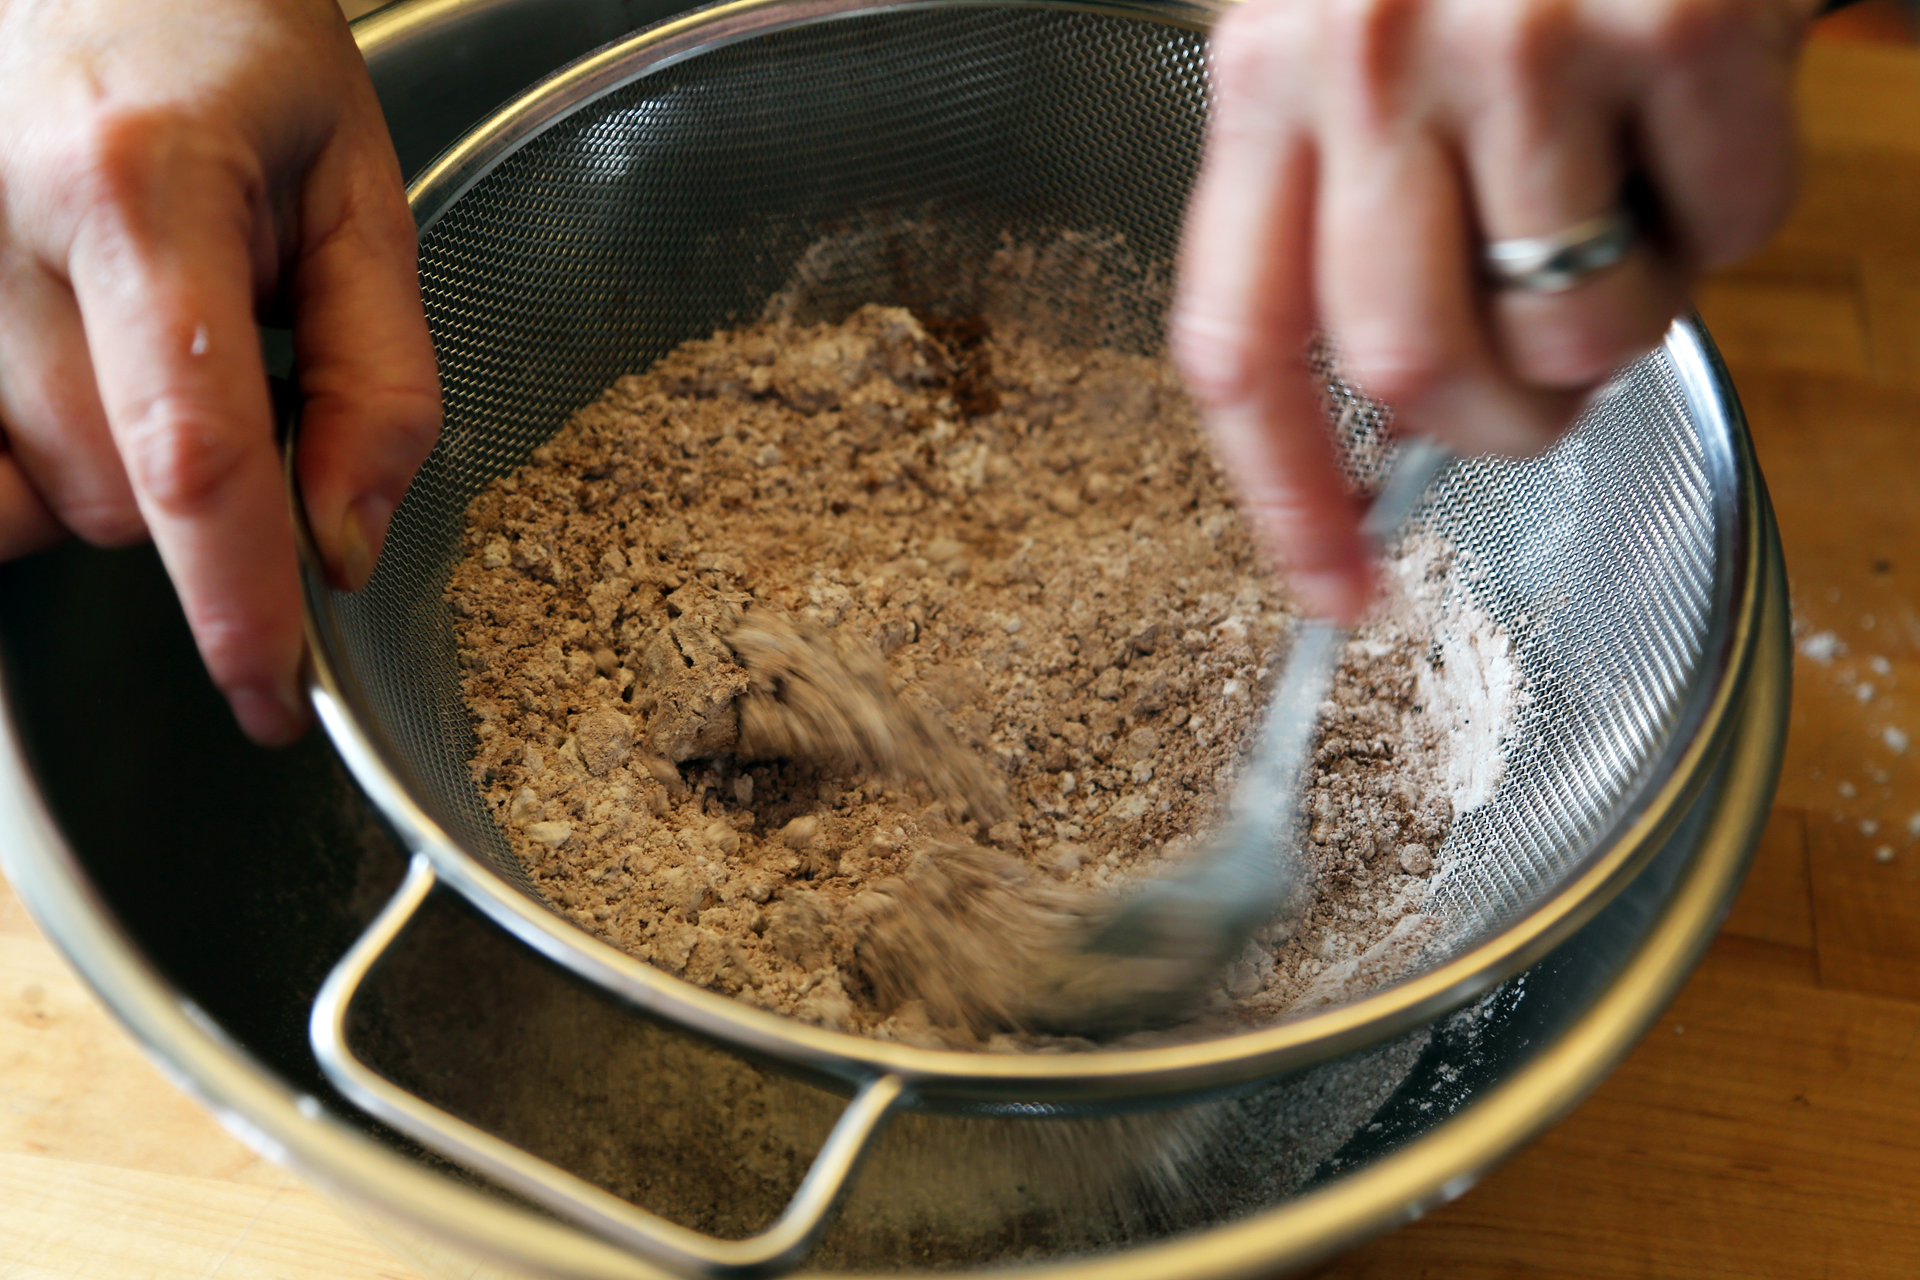 In a bowl, sift together the flour, cocoa powder, and baking powder.